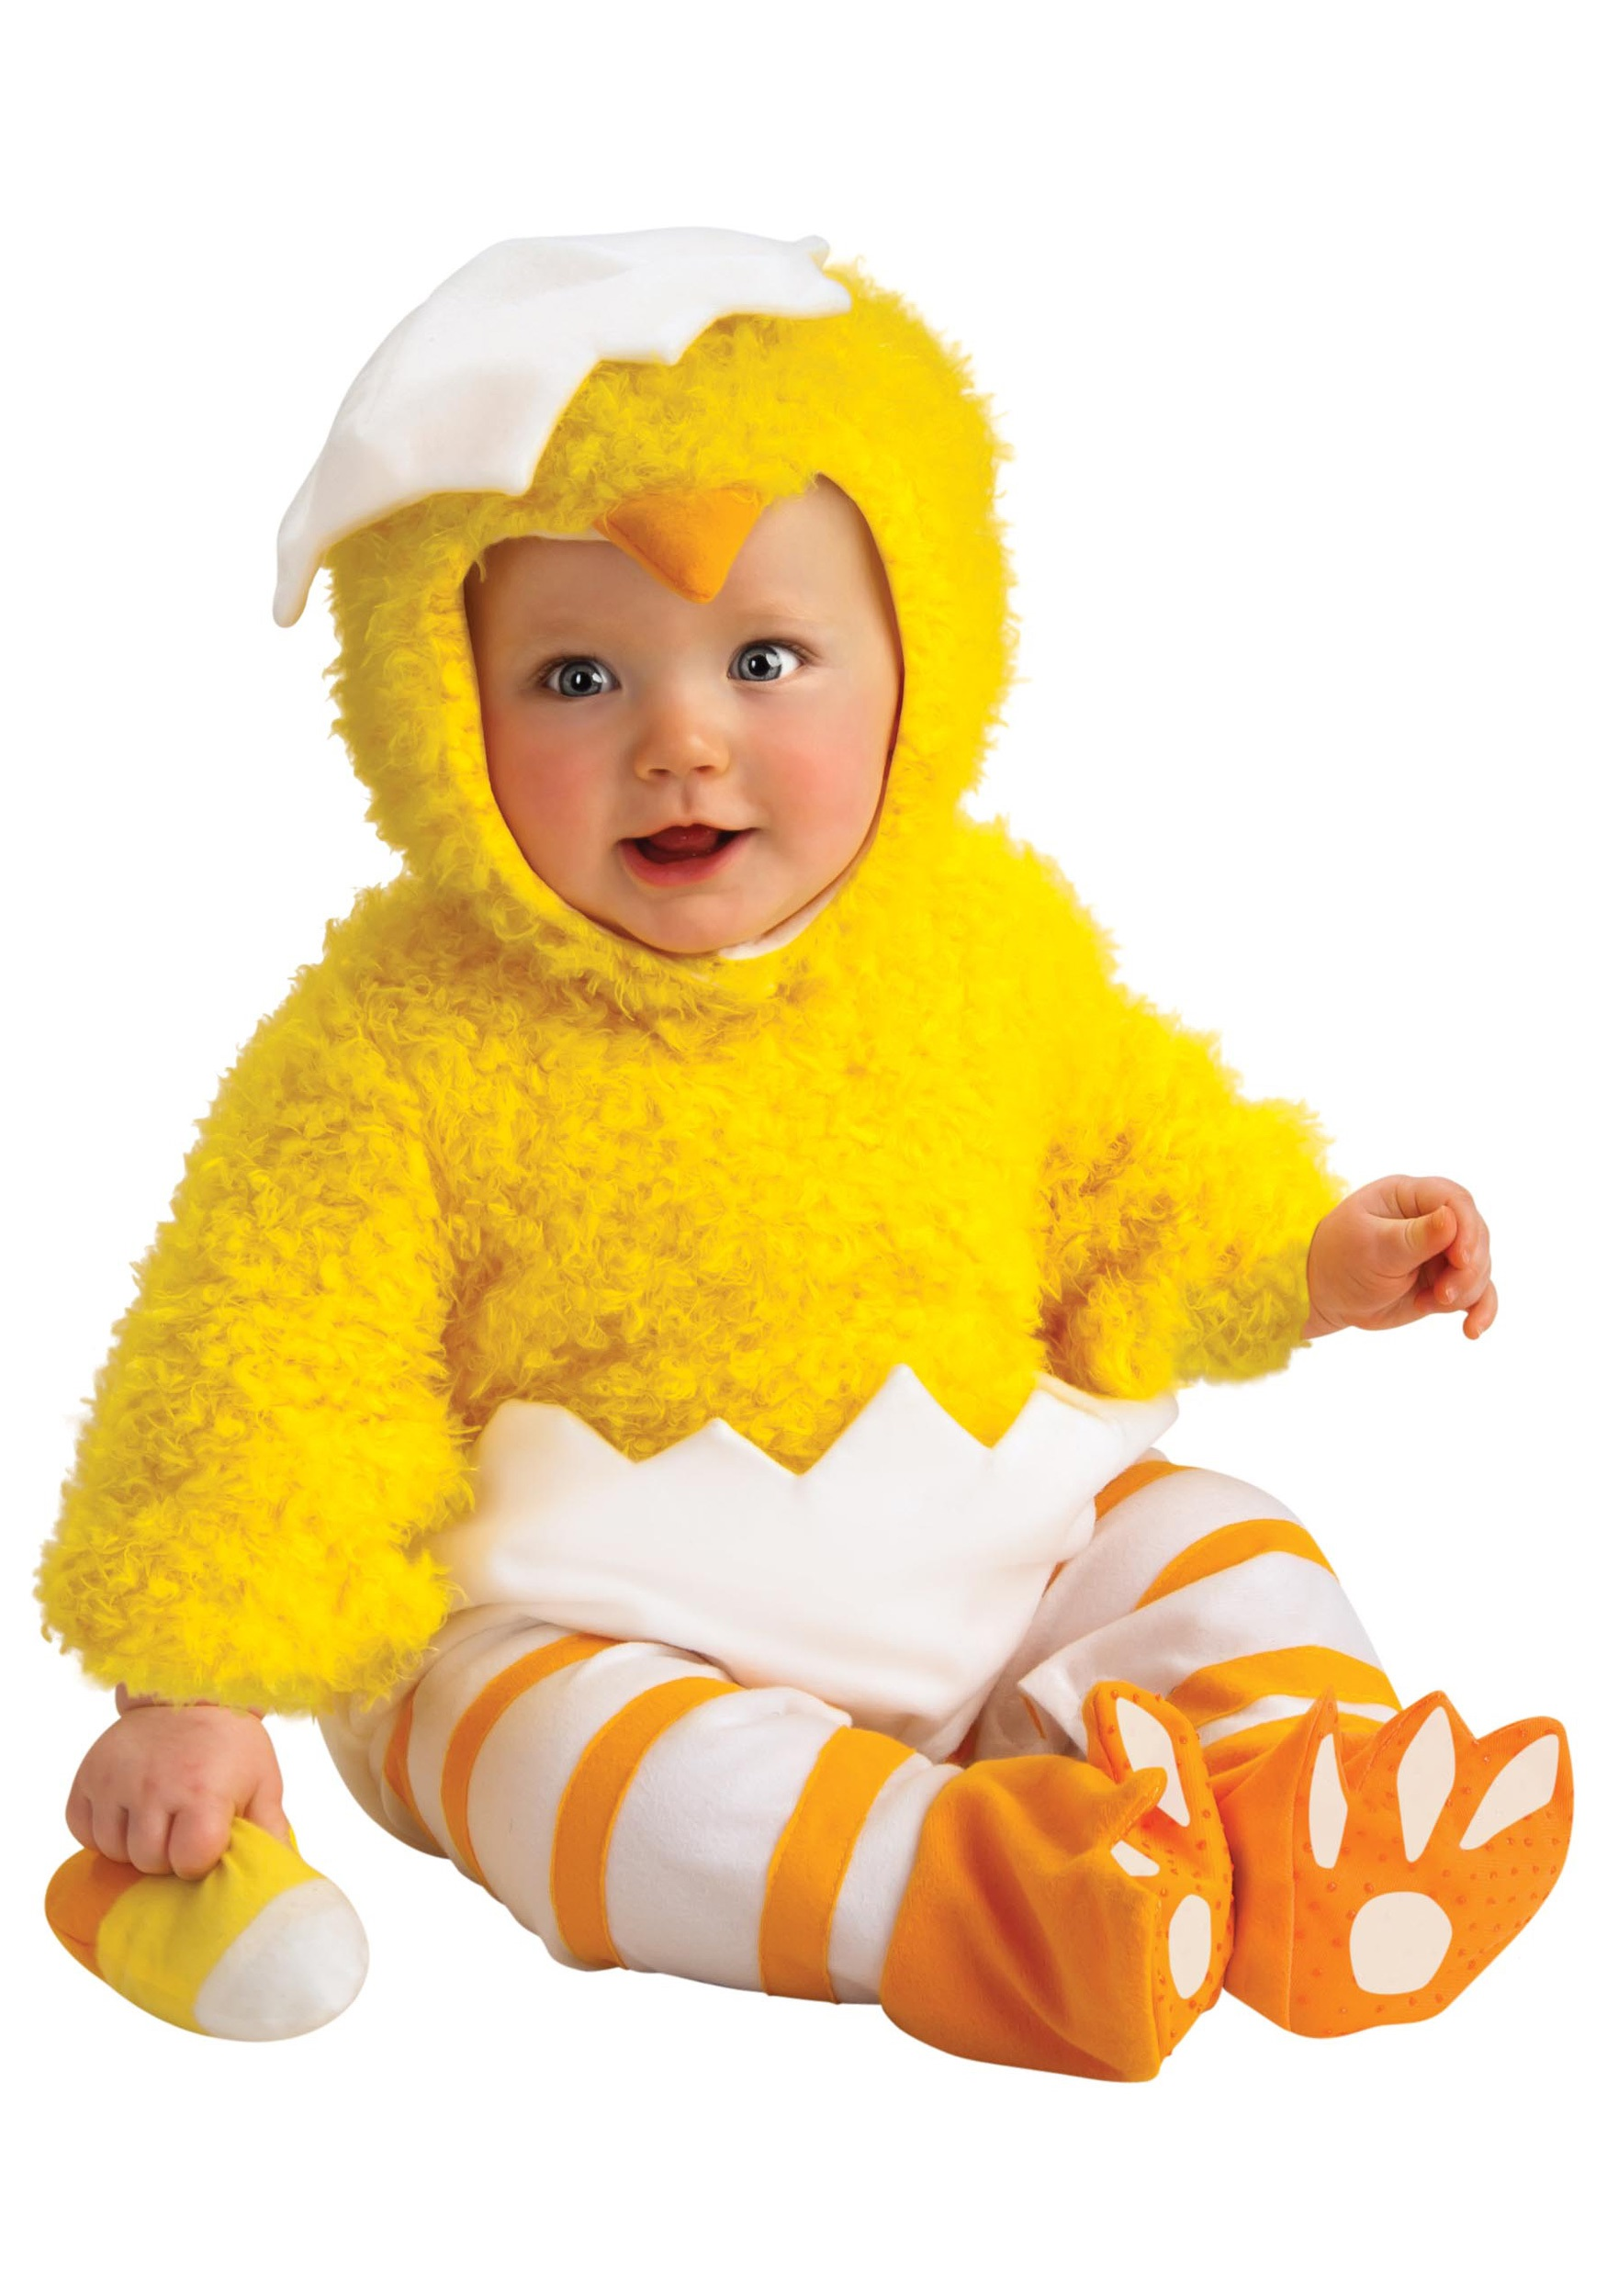 Infant Chickie Costume halloween costume (Infant Chickie Costume)  sc 1 st  Halloween Costumes & Farm Animal u0026 Bug Costumes - Halloween Costumes